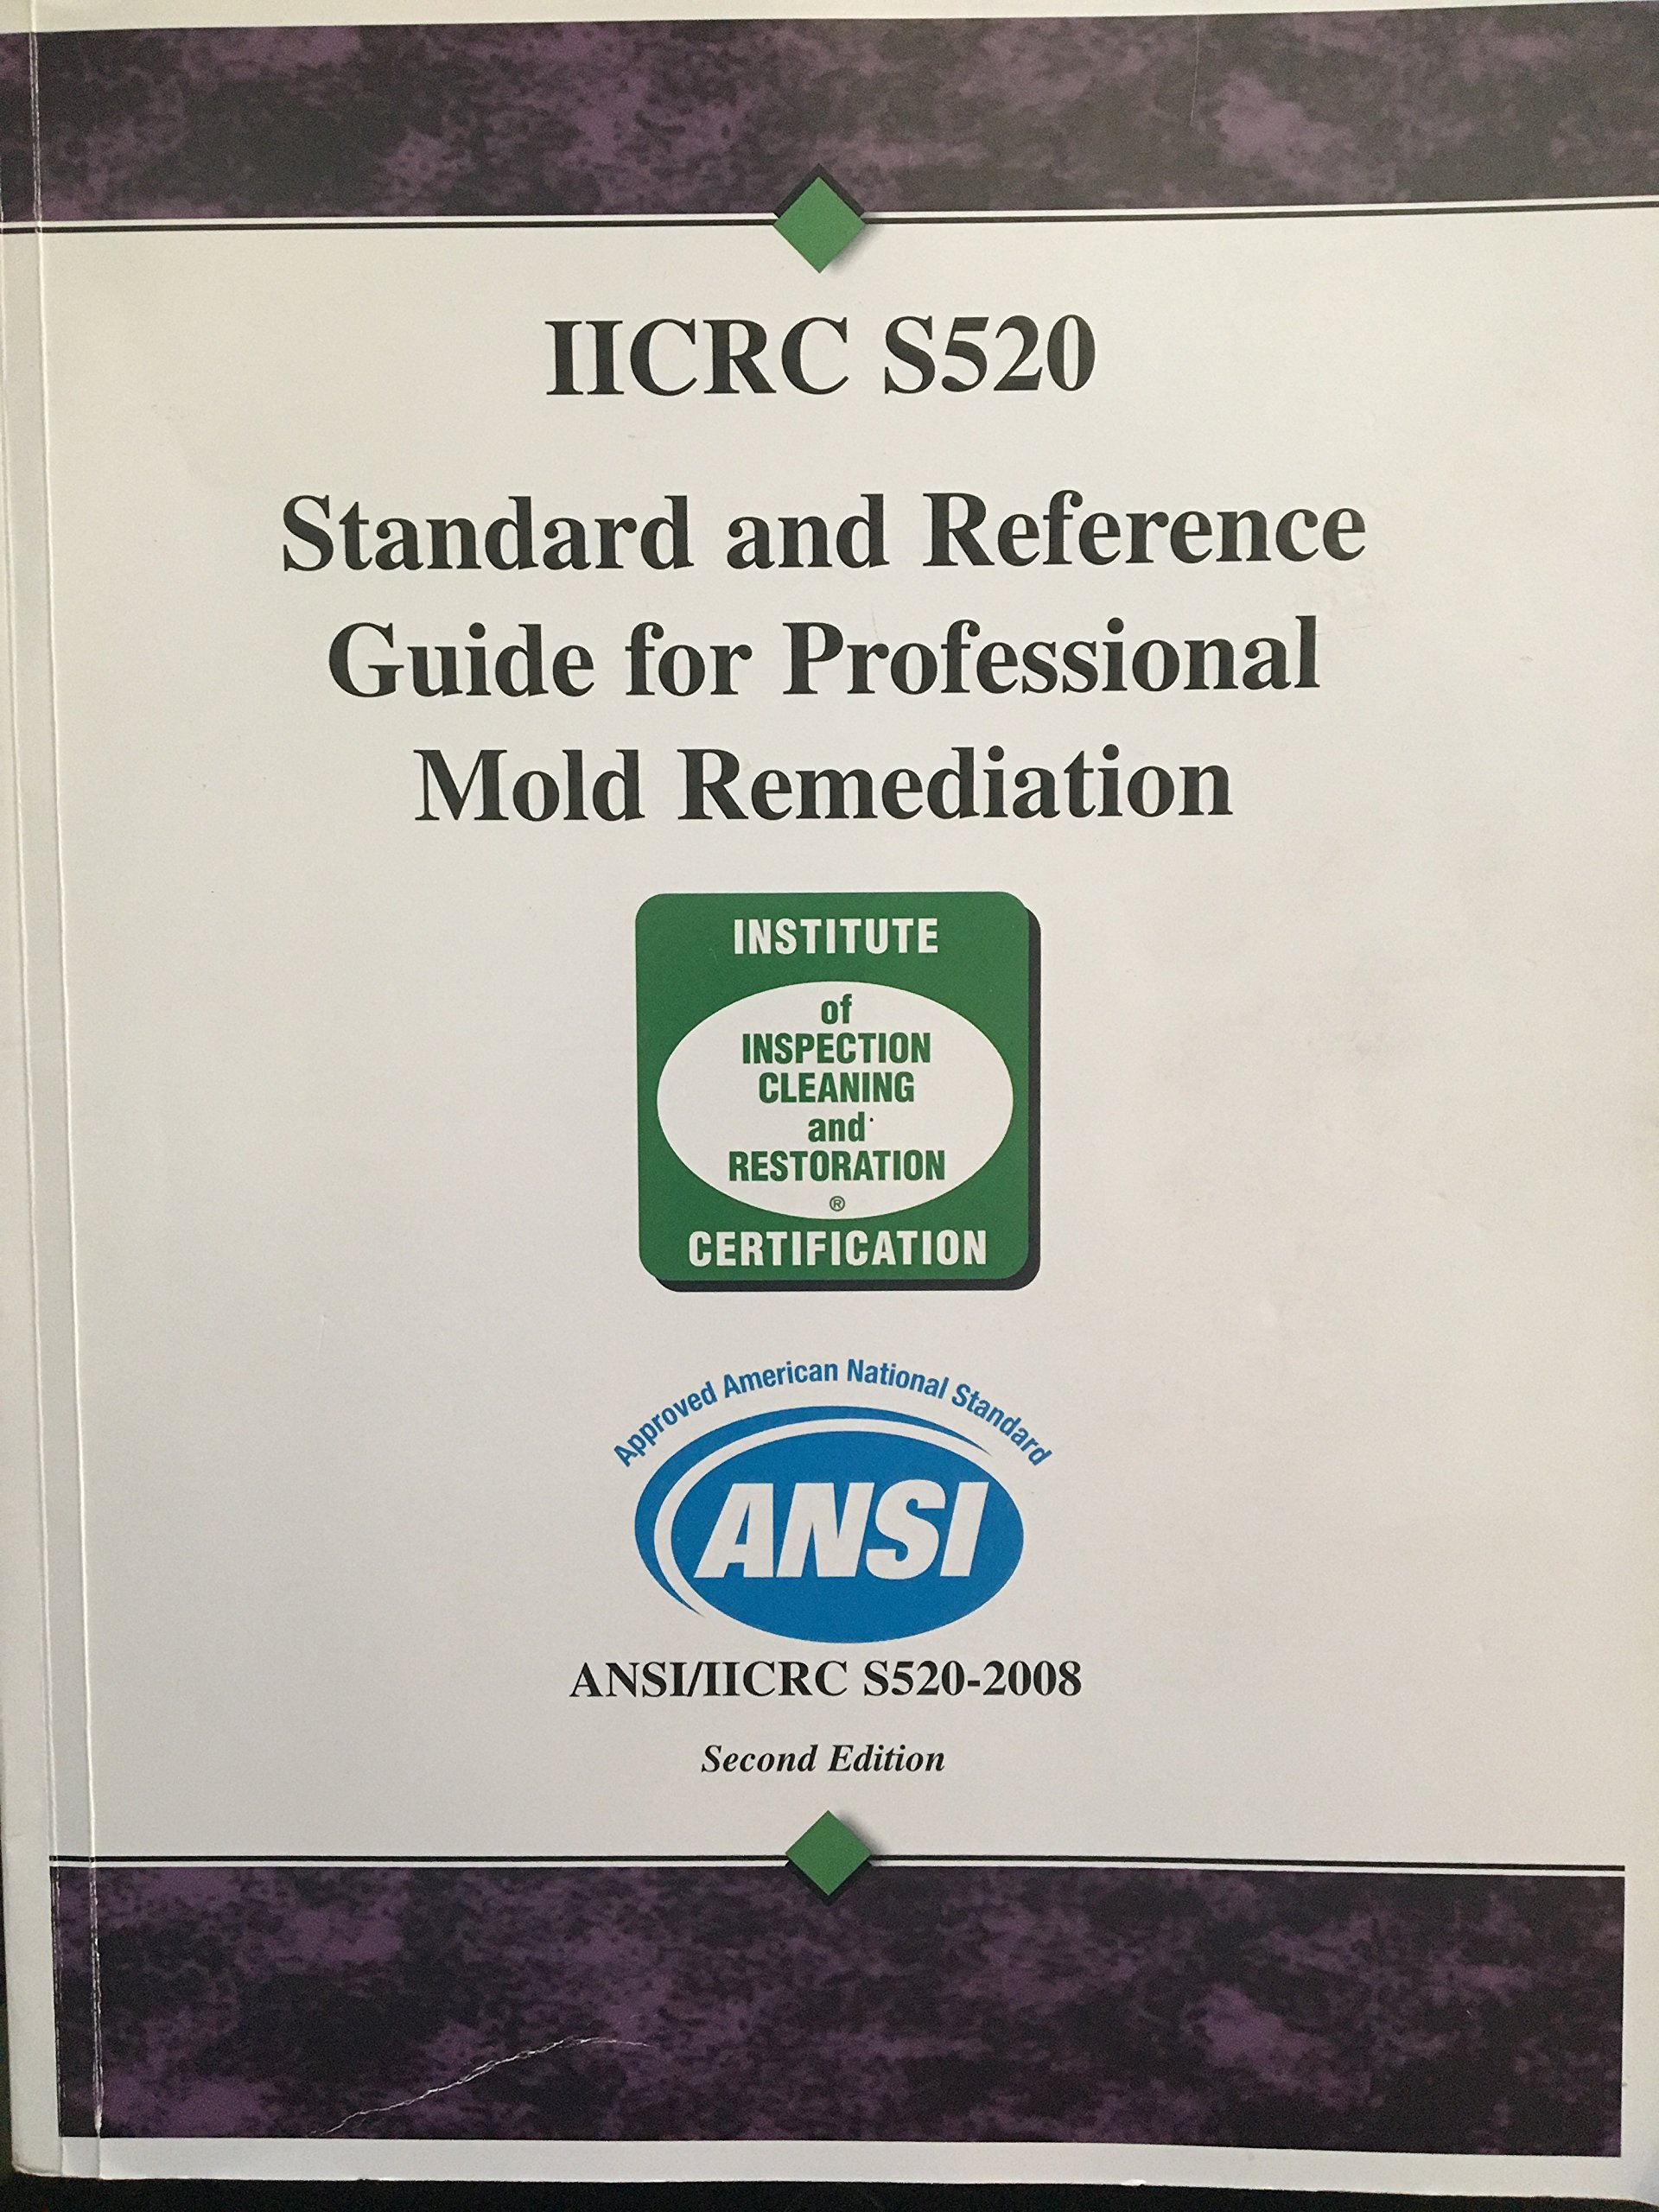 ANSI/IICRC S520-2008 Standard and Reference Guide for Professional